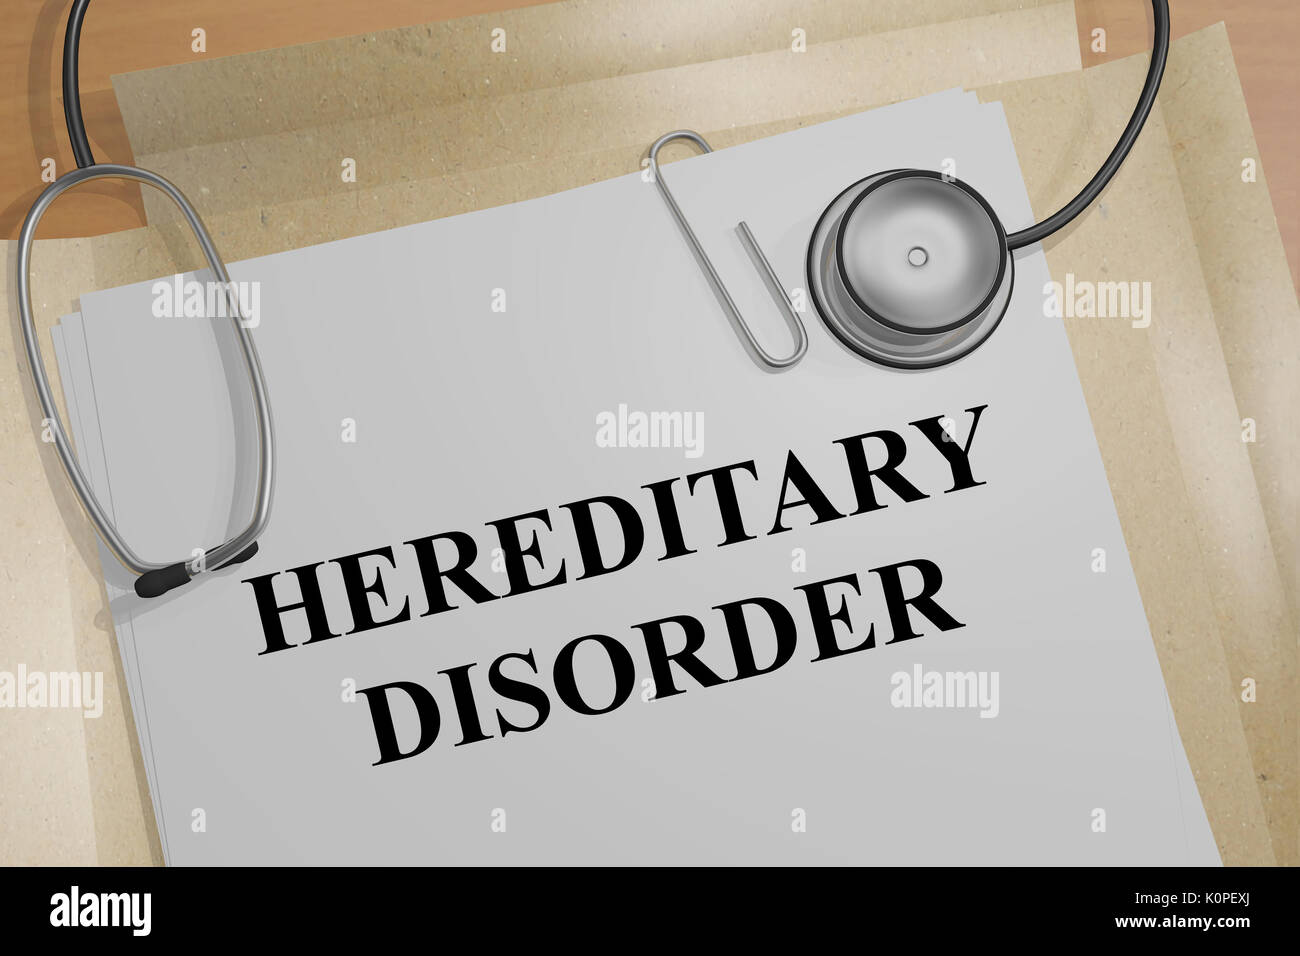 3D illustration of 'HEREDITARY DISORDER' title on a medical document - Stock Image